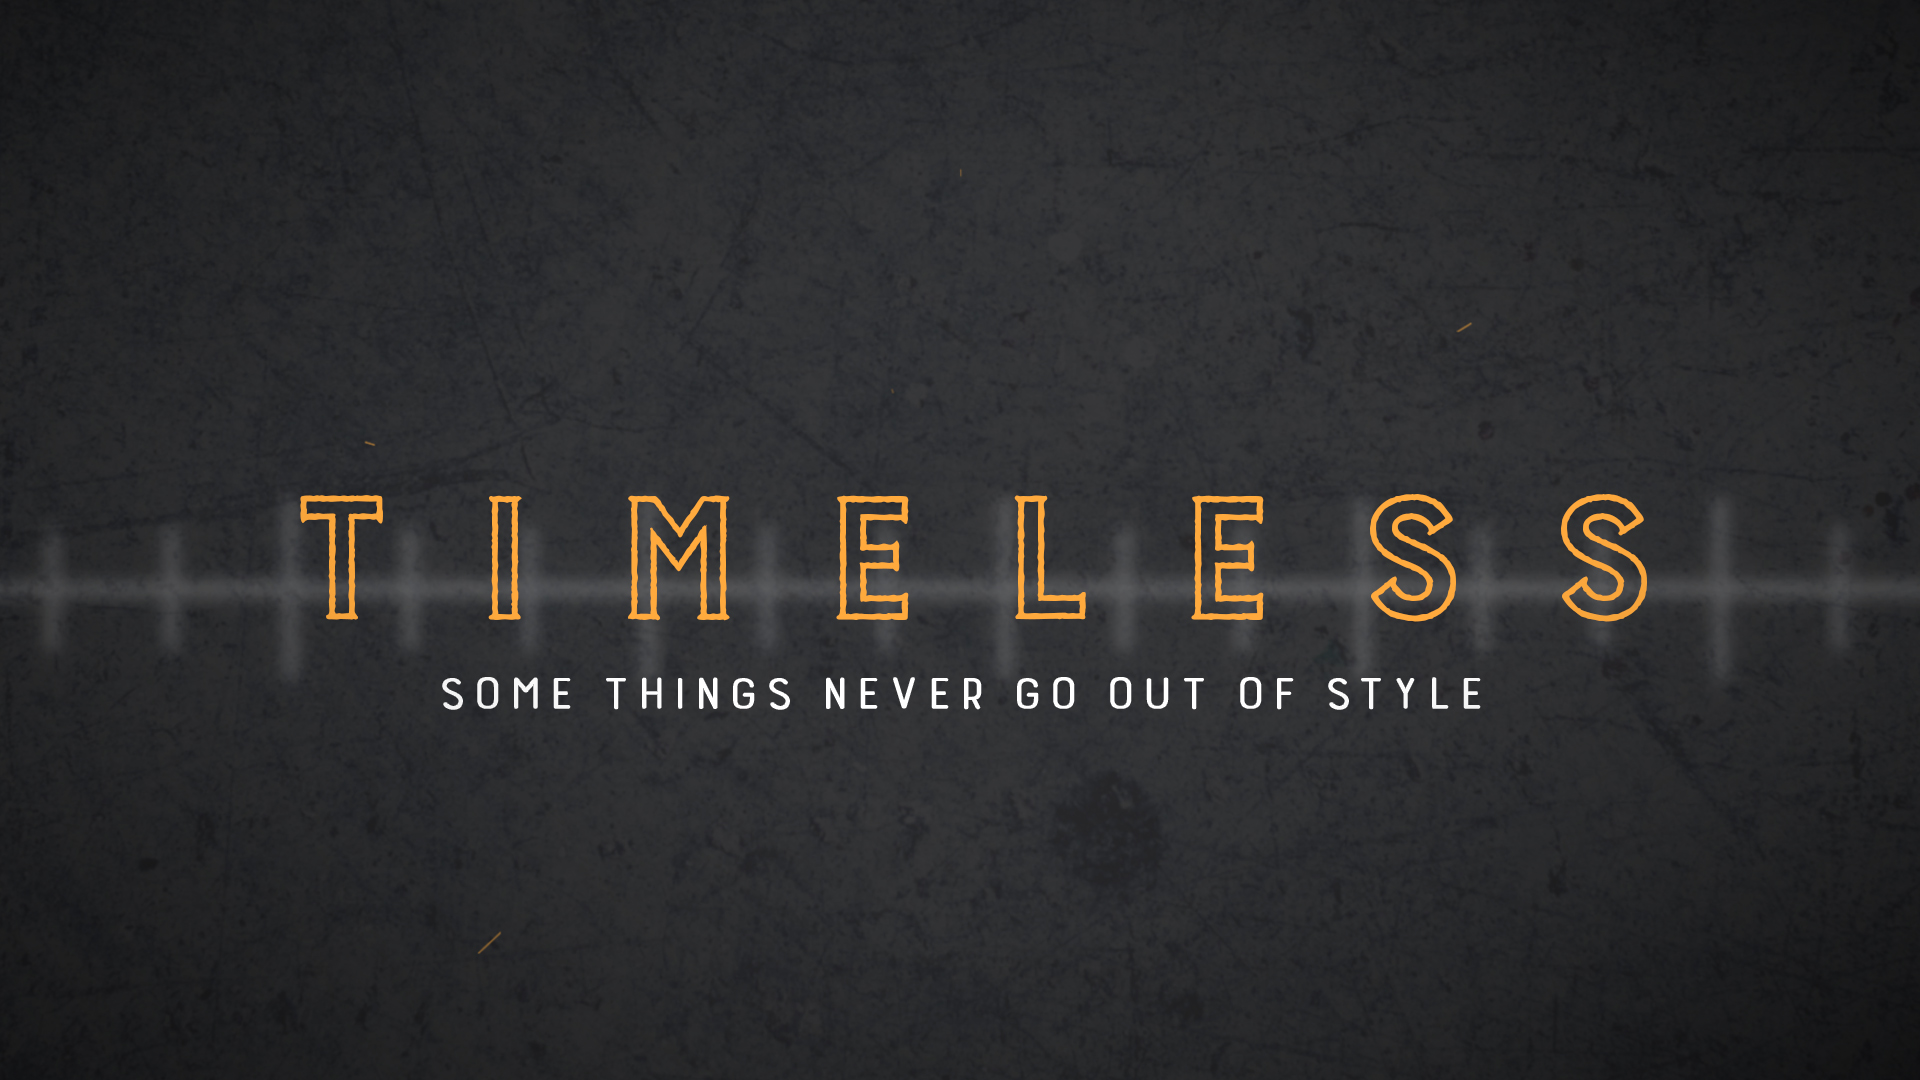 Timeless: God's Word